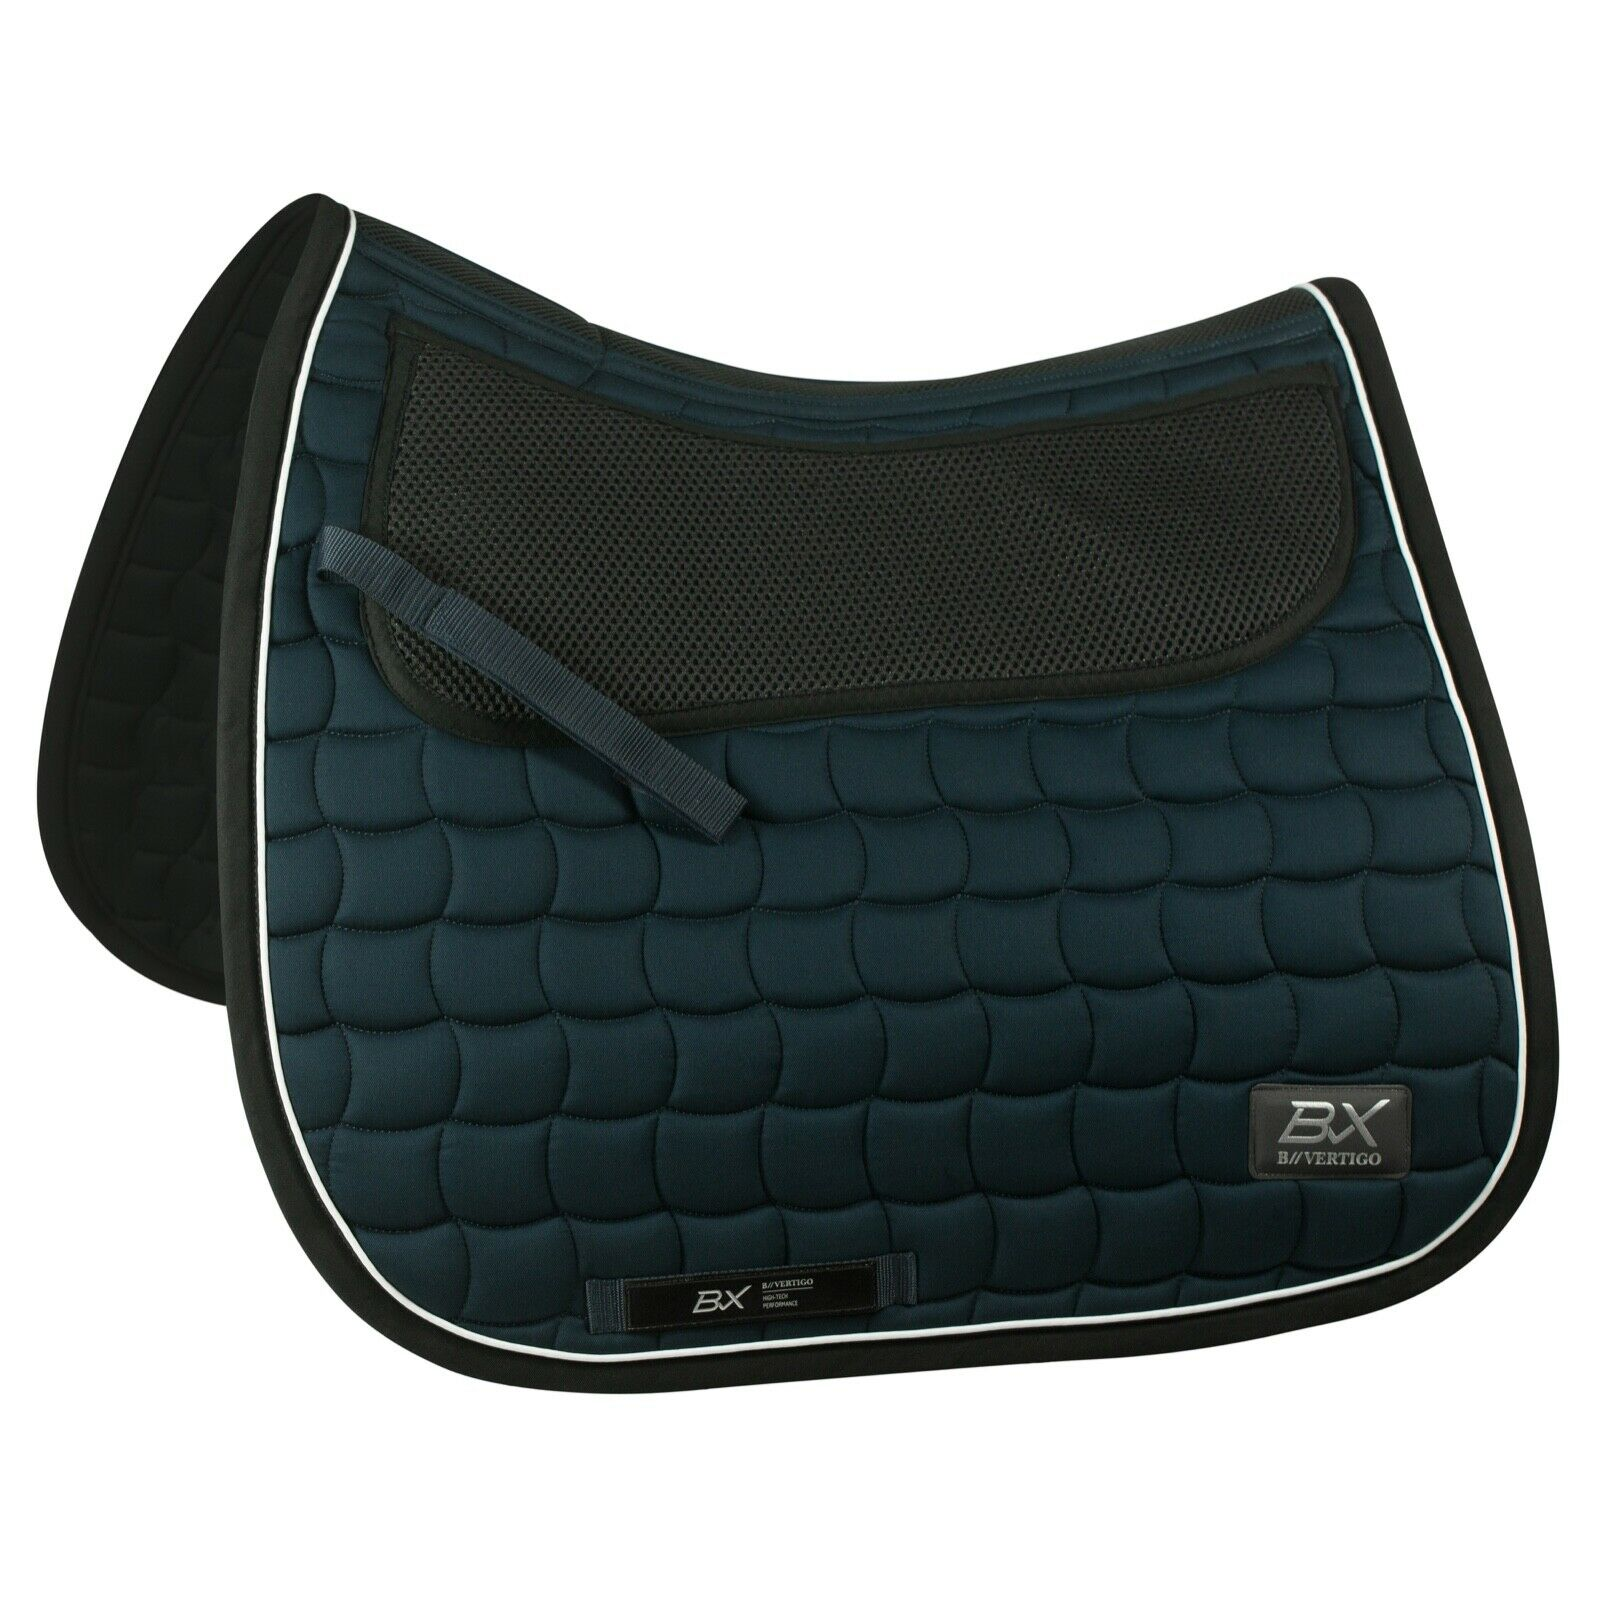 B Grünigo BVX Kleidage Technical Saddle Pad